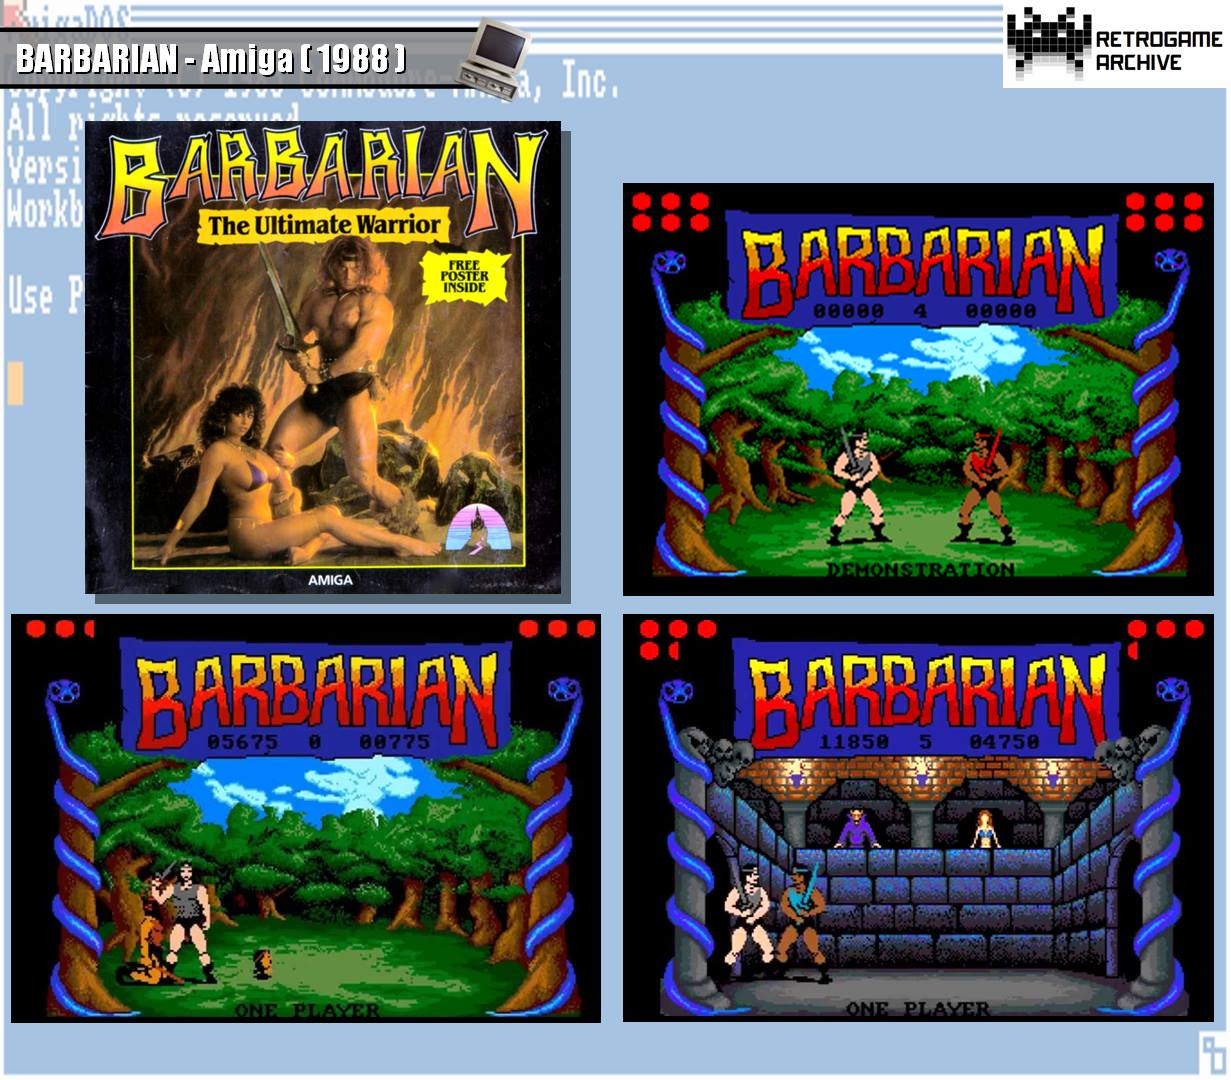 Barbarian by PALACE (Amiga)